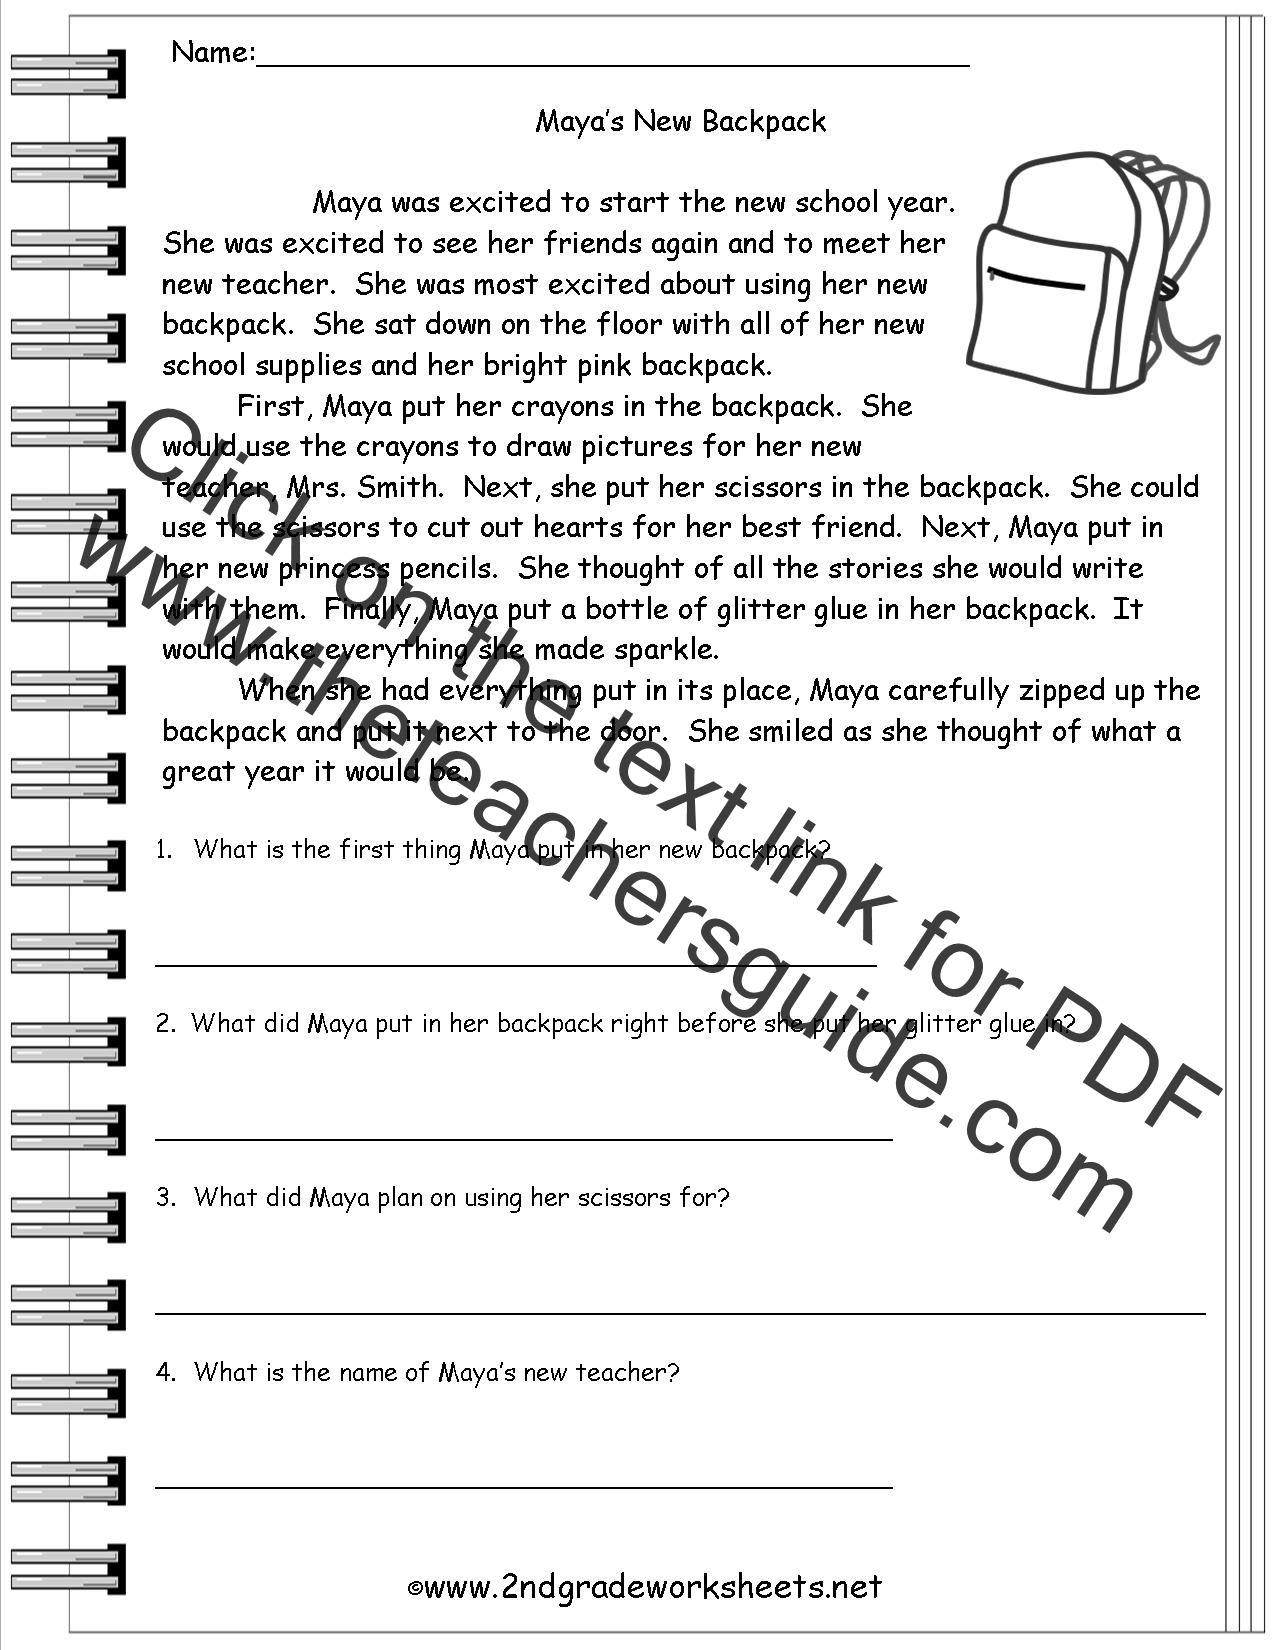 Worksheets 4th Grade Ela Worksheets reading worksheeets worksheets